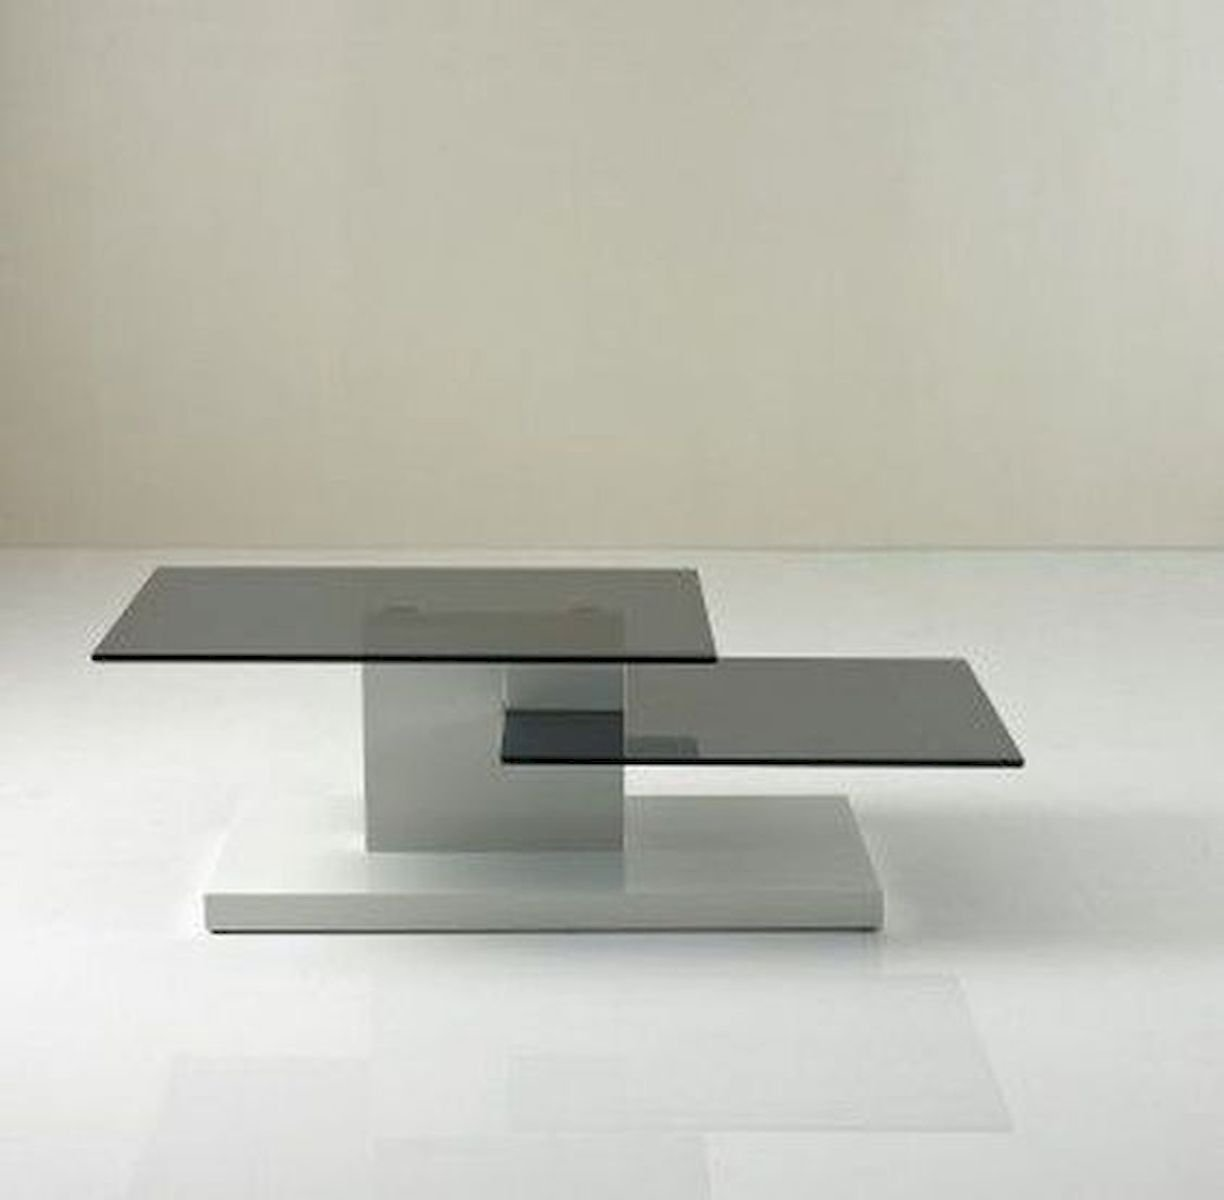 40 Awesome Modern Glass Coffee Table Design Ideas For Your Living Room (10)